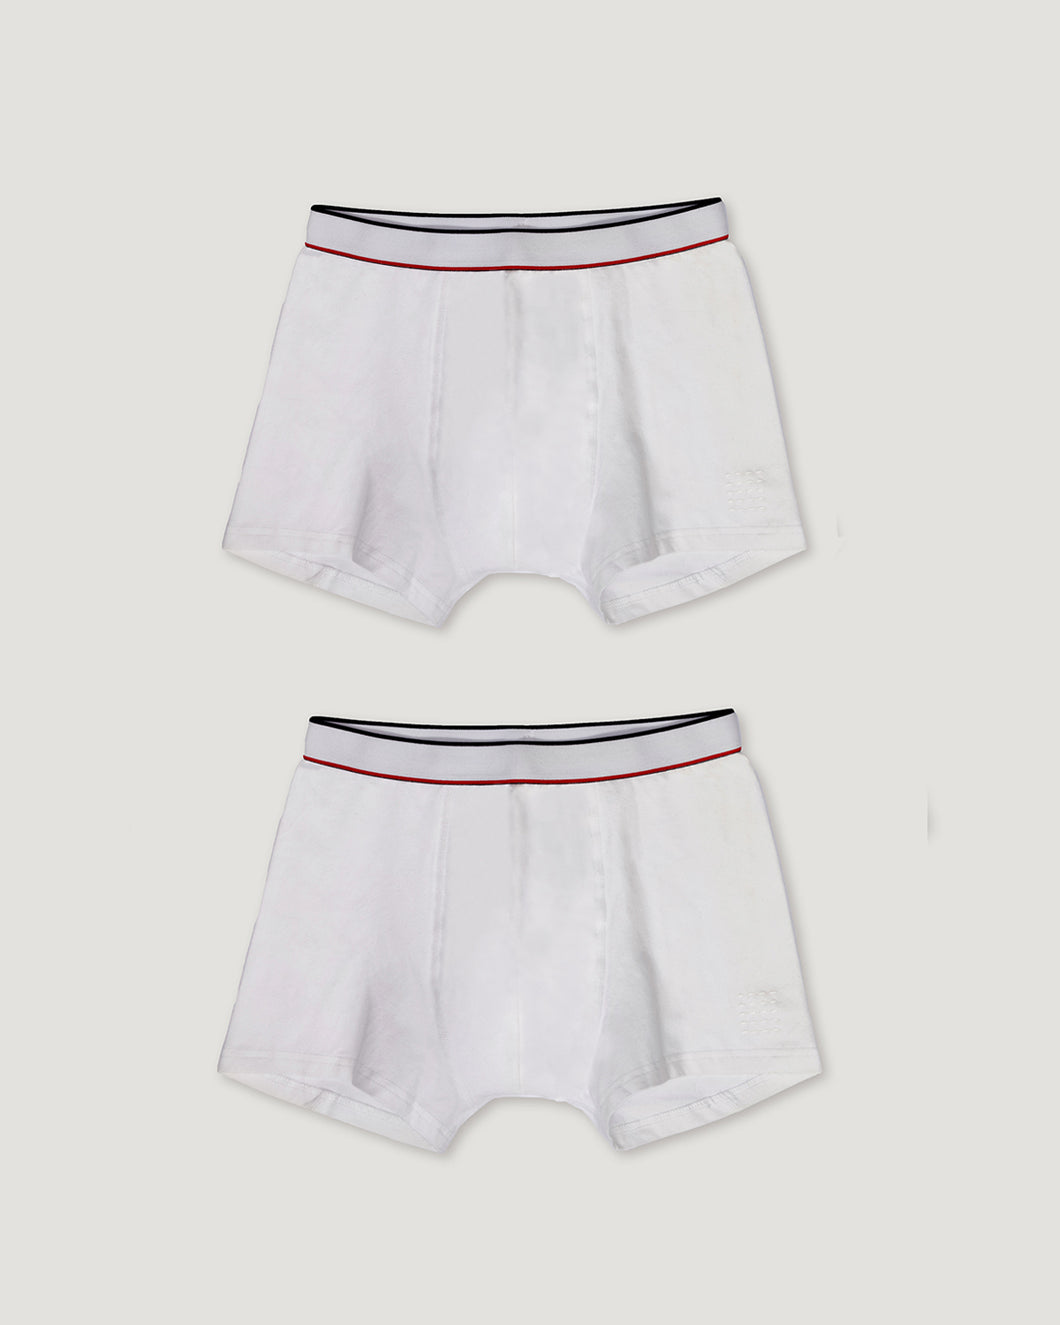 BOXER SHORT WHITE- 2 PACK-Boxer short-Blankdays